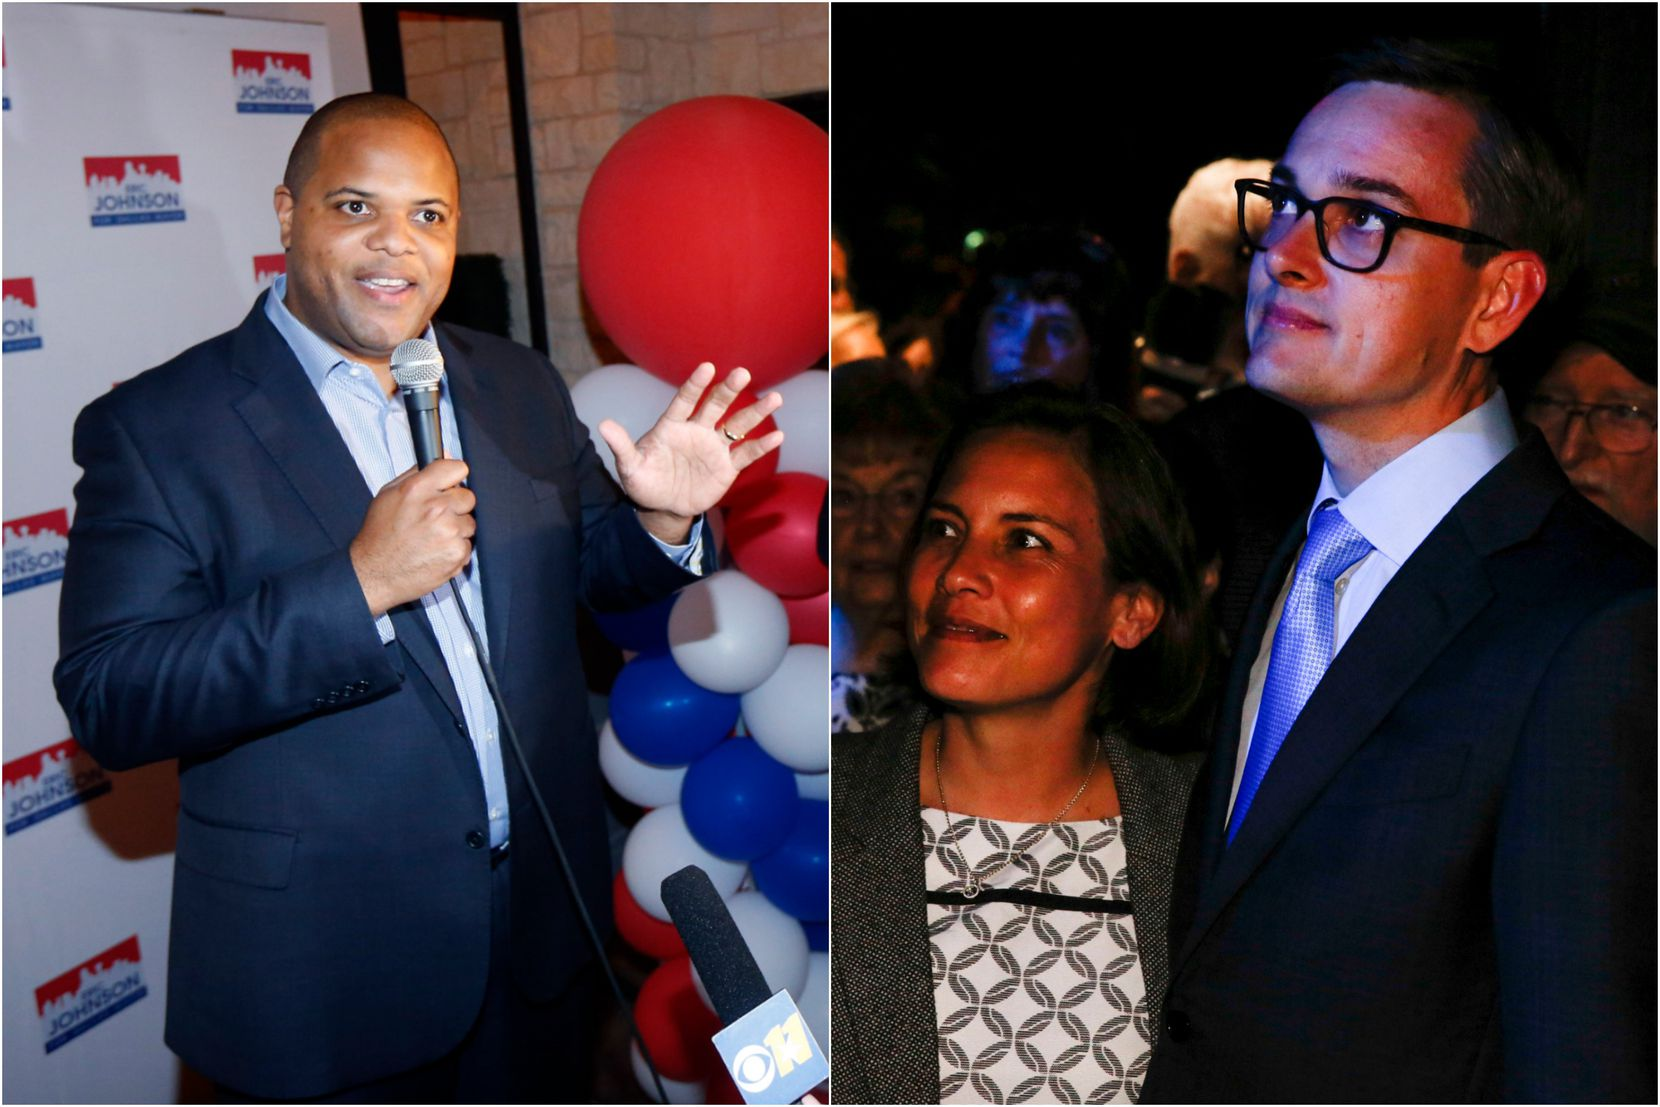 Rep. Eric Johnson, D-Dallas (left), and City Council member Scott Griggs, pictured with his wife, will face each other in a June 8 runoff for Dallas mayor. (Left photo: Tom Fox/Staff Photographer; right photo: Brian Elledge/Staff Photographer)